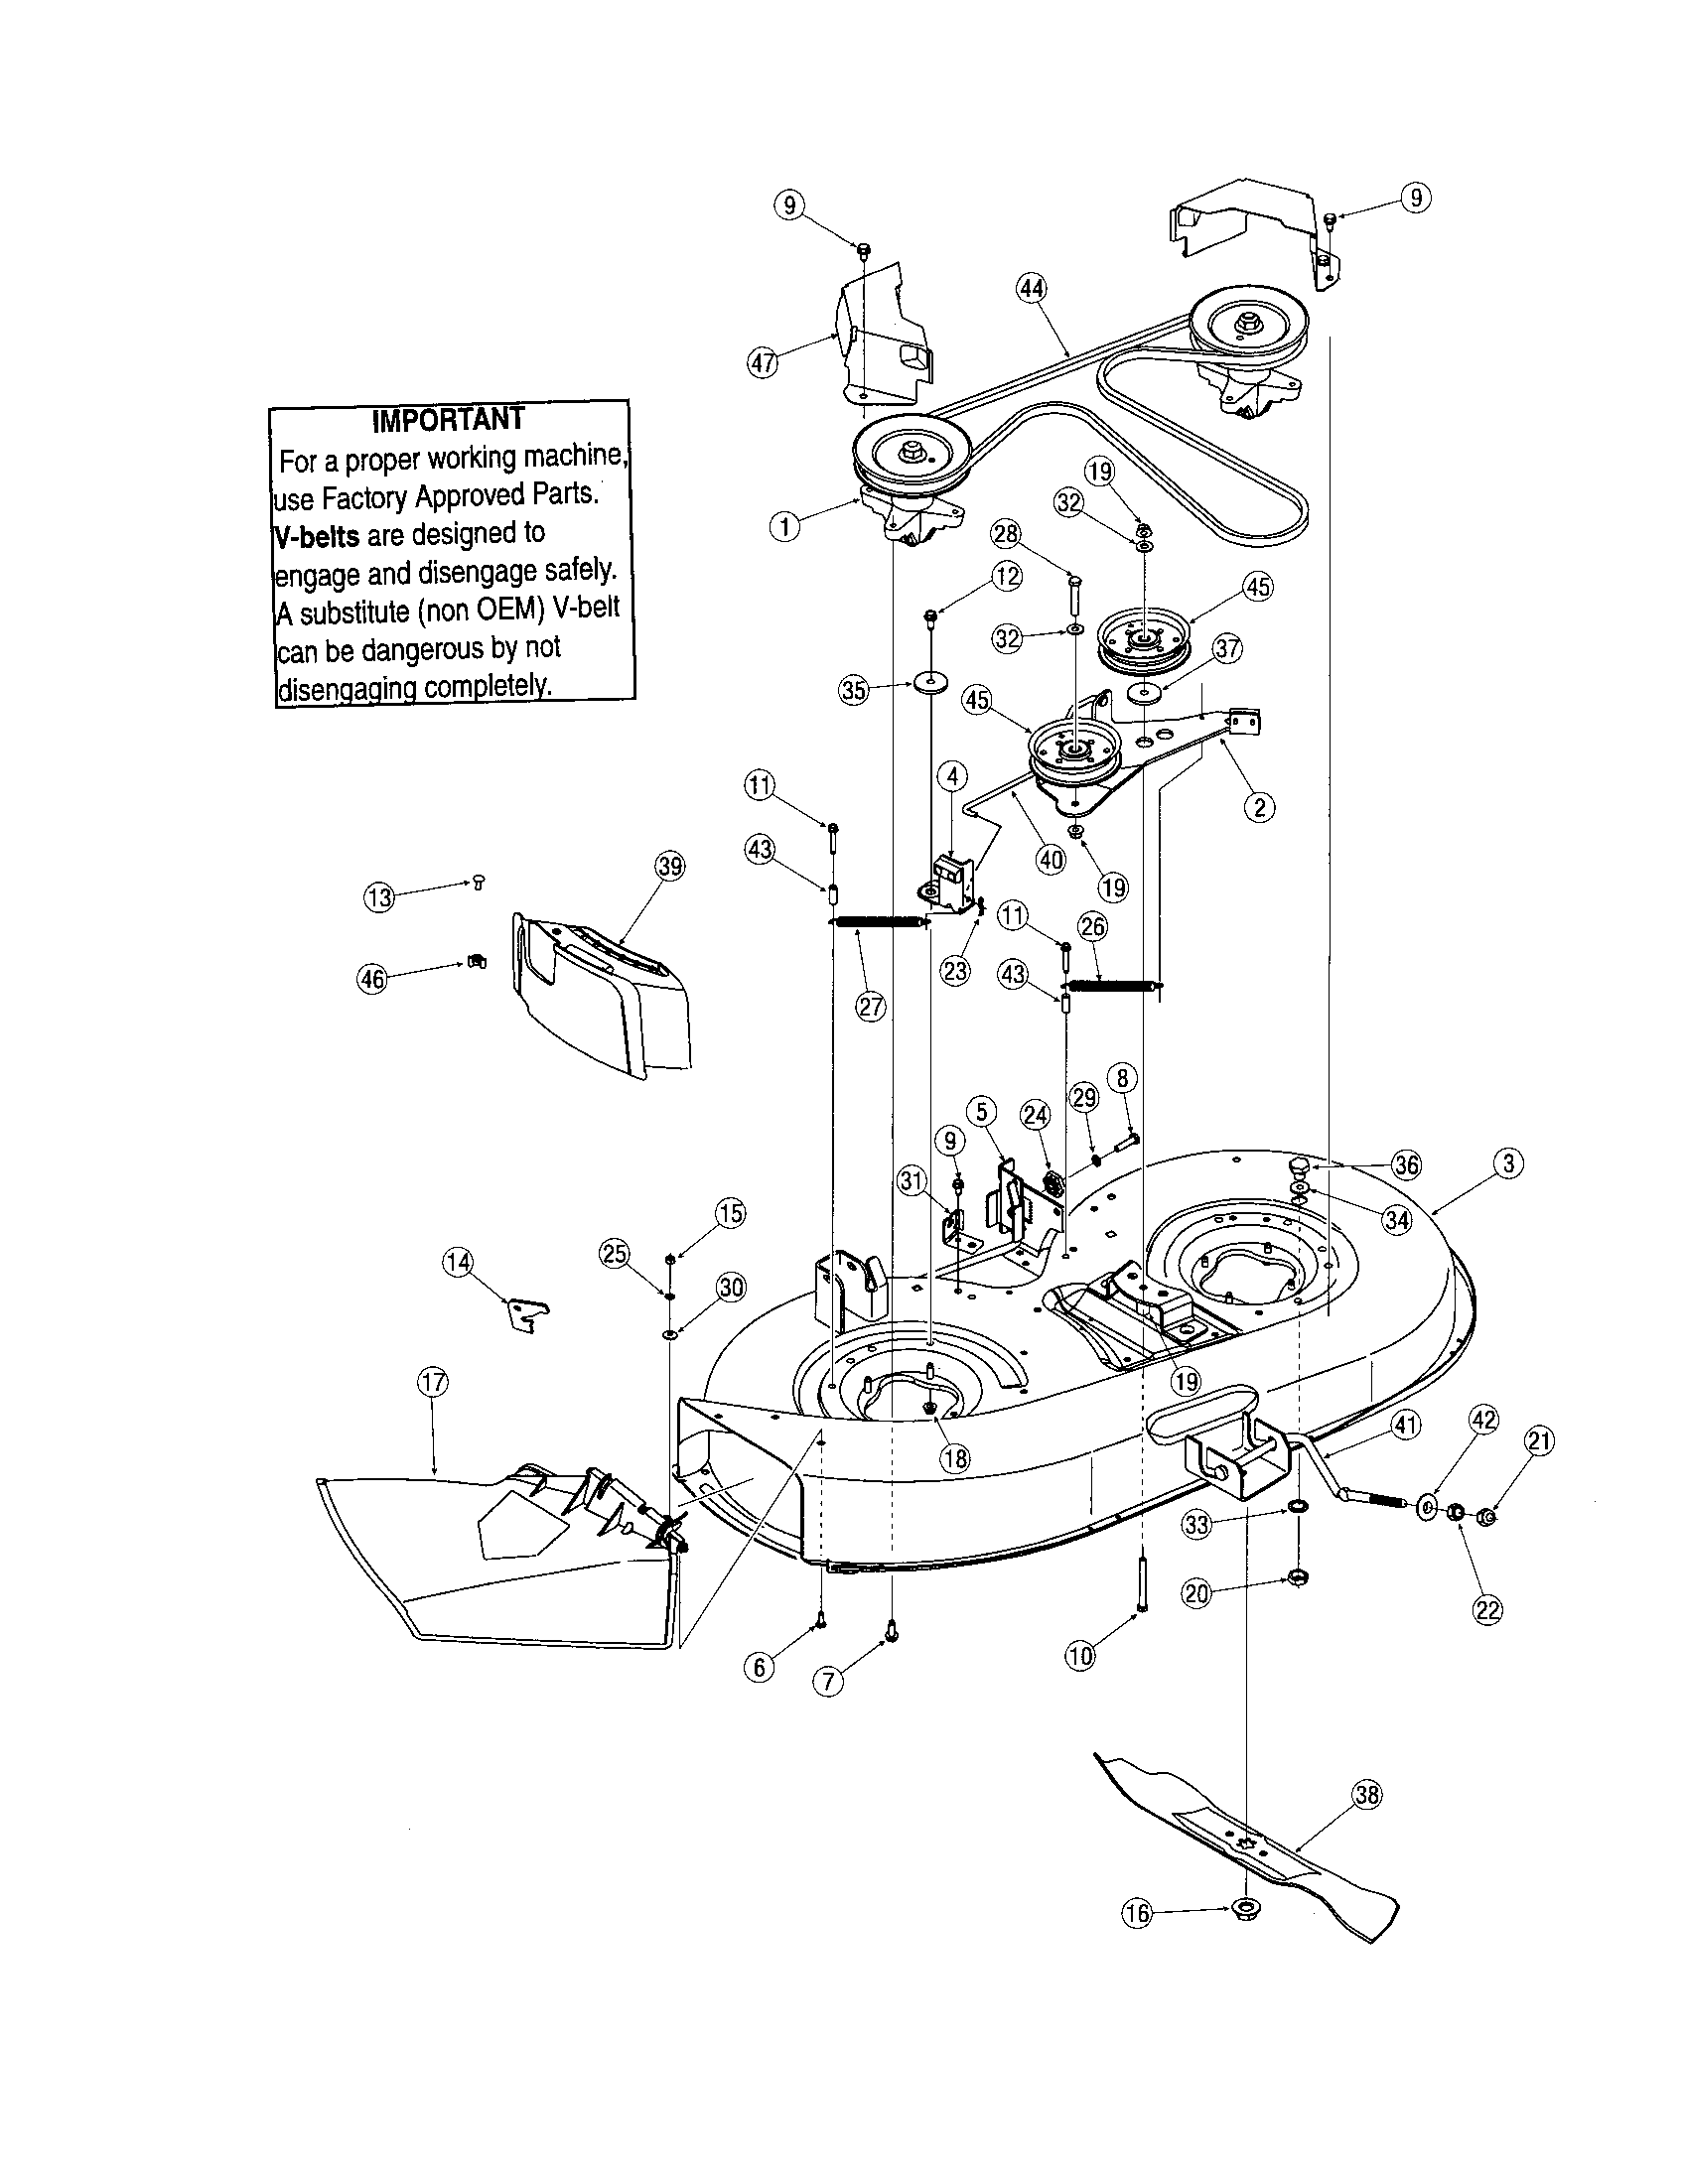 Wiring Diagram For 13an77tg766 Troy Bilt Riding Mower